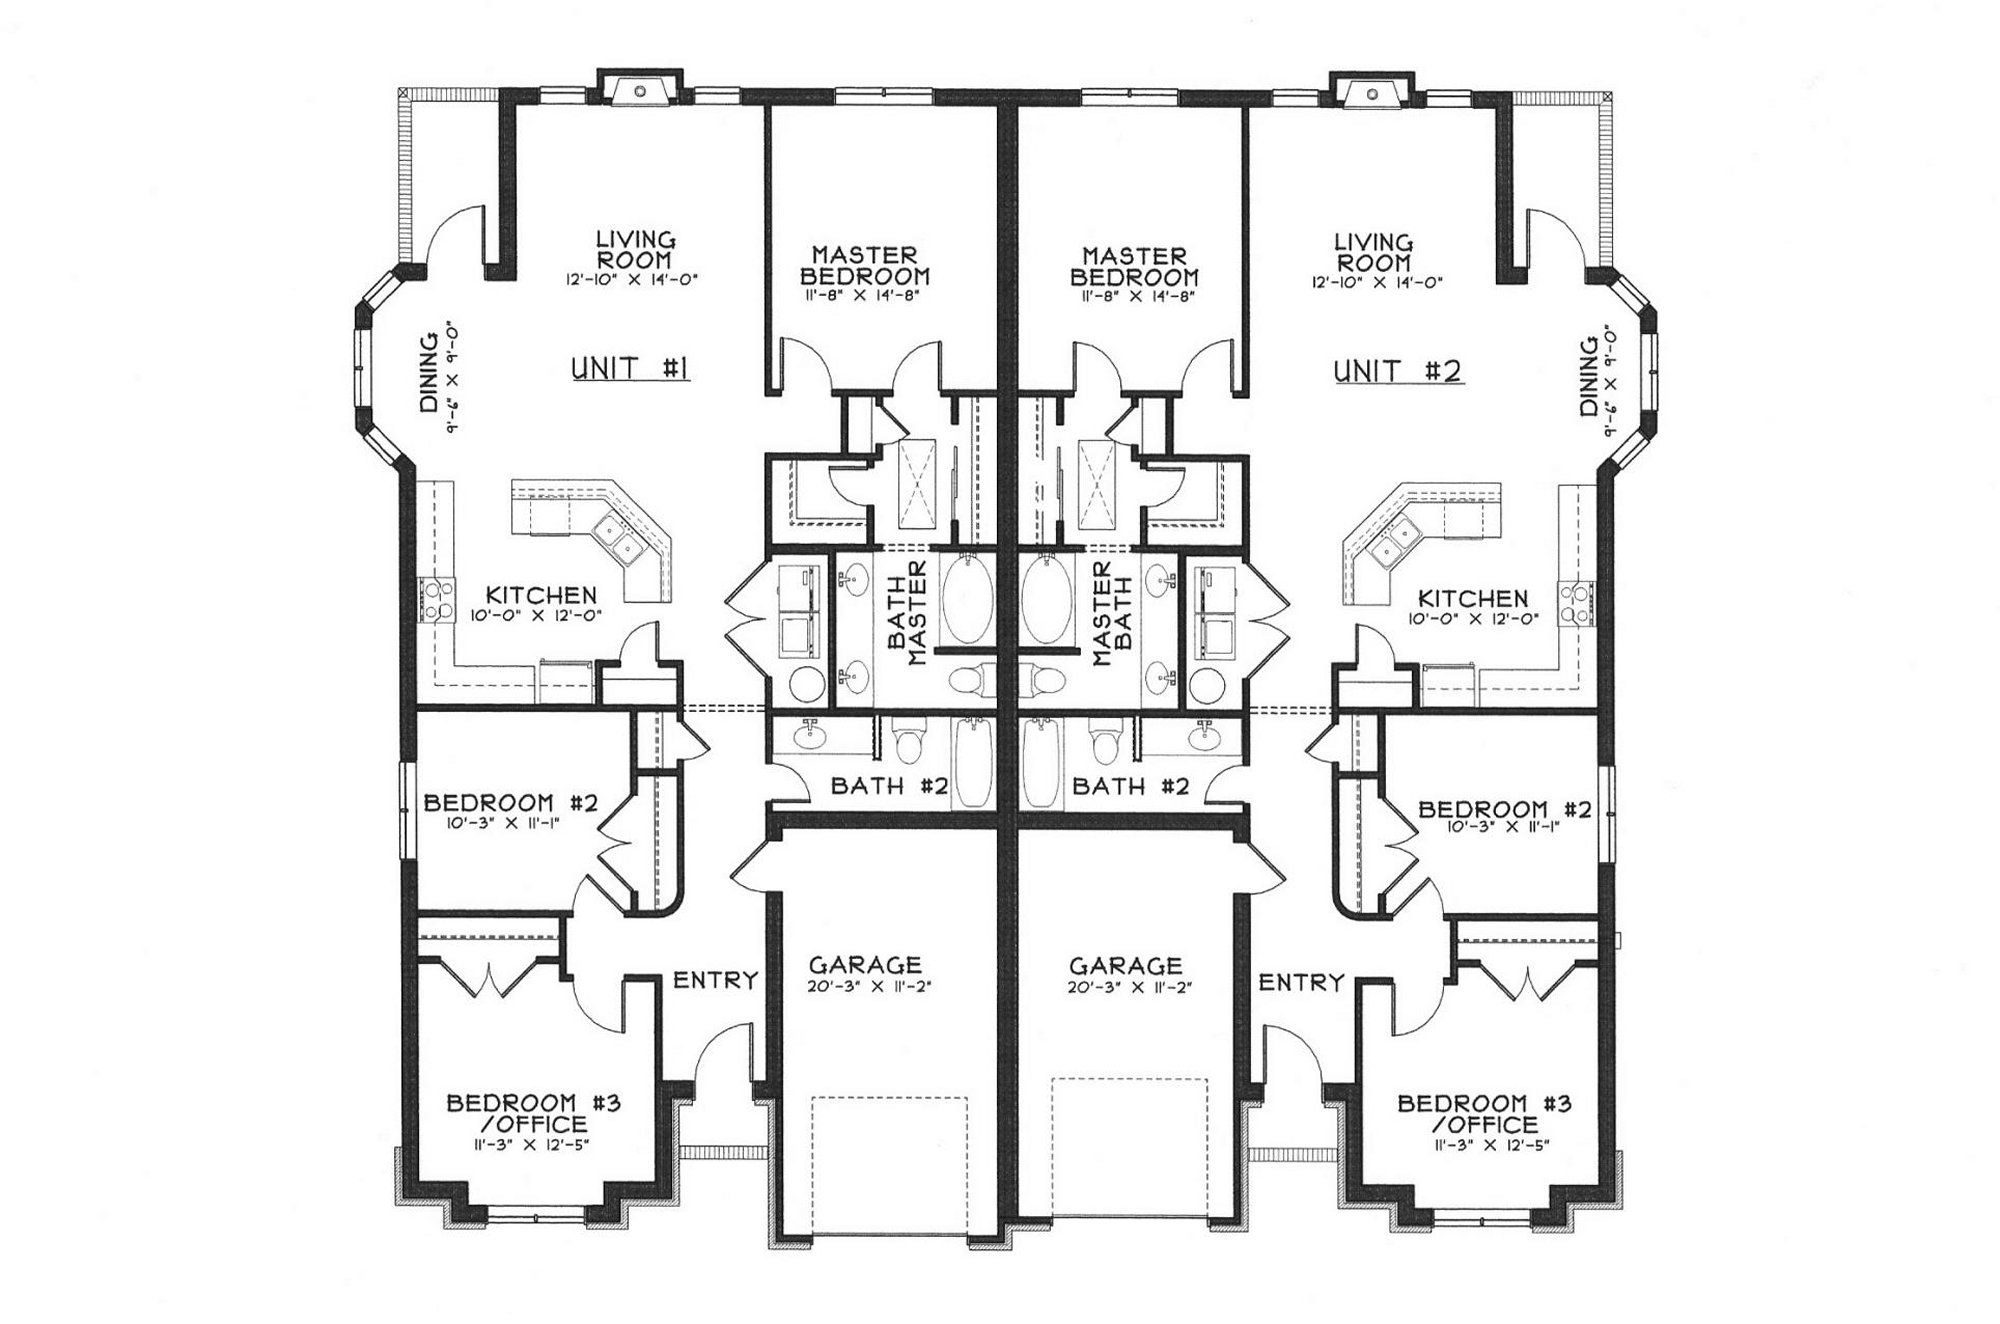 17 Best images about Duplex plans on Pinterest Acid stained